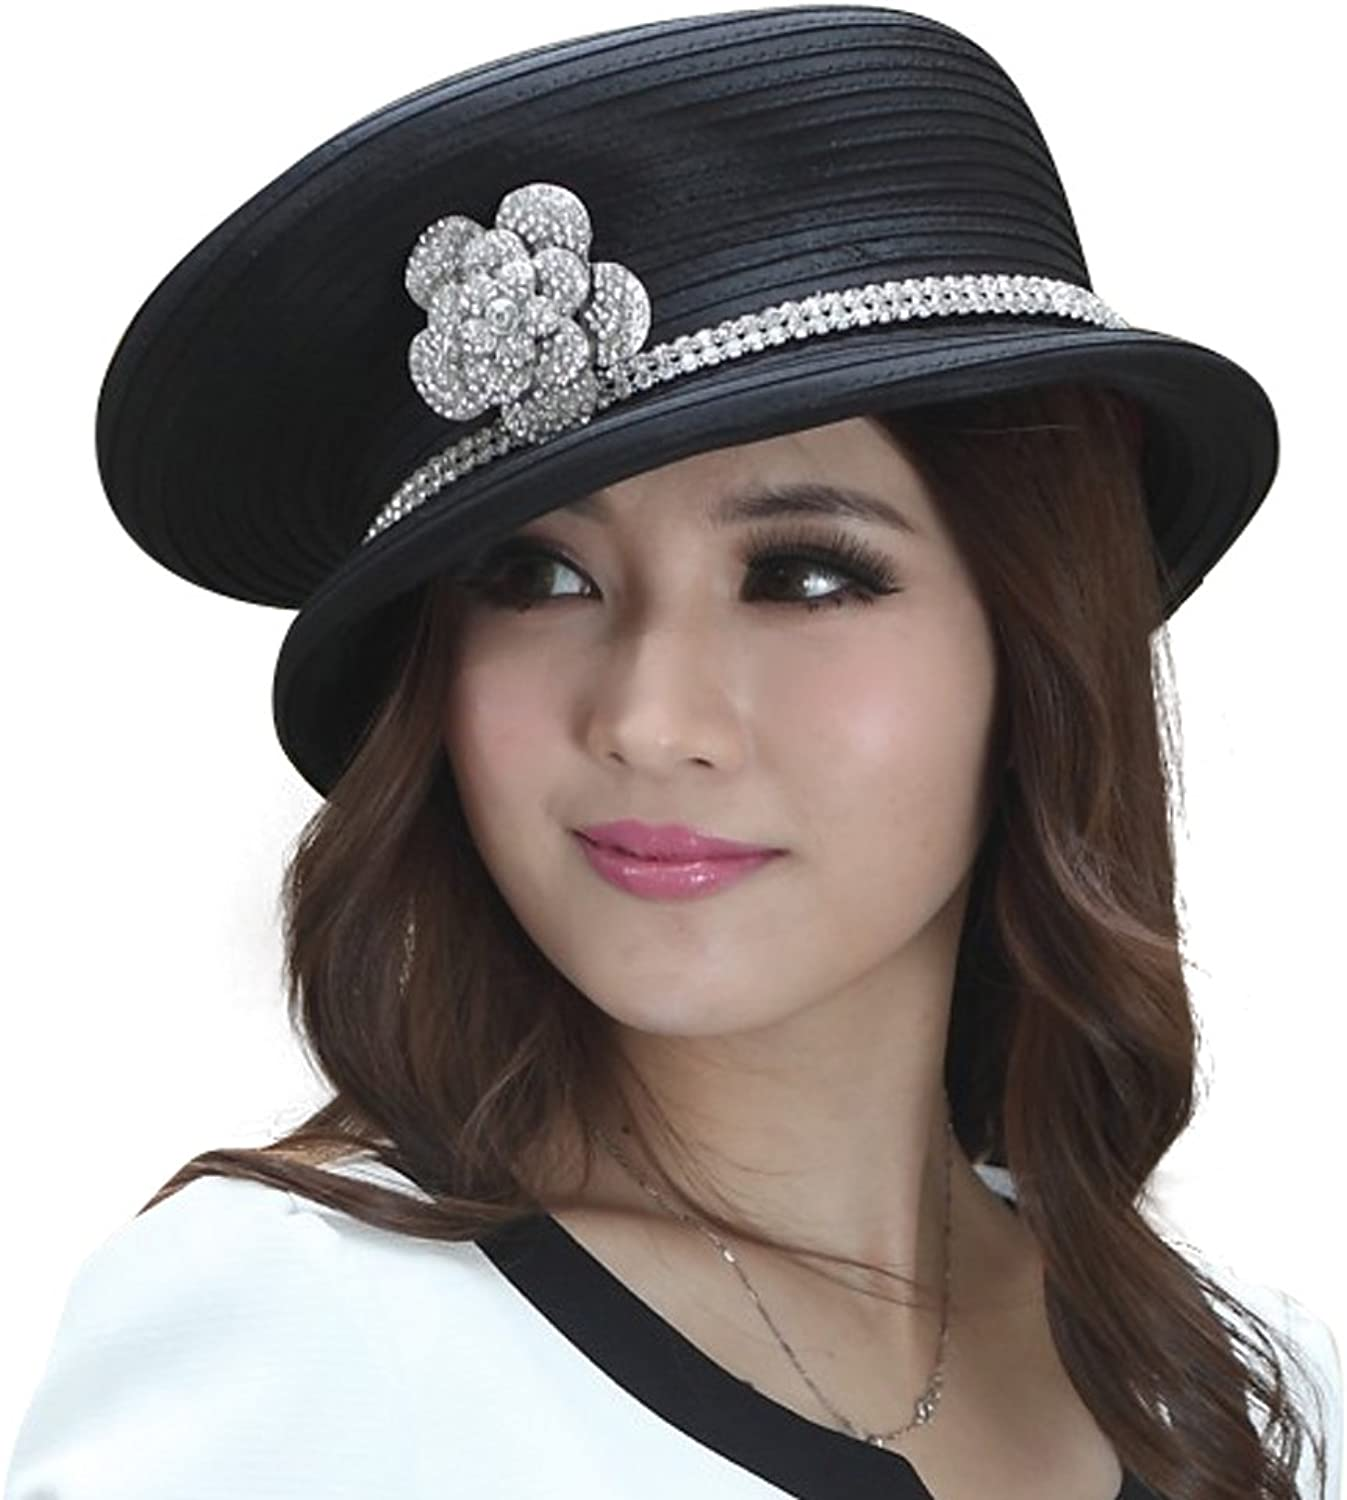 June's Young Women Church Hat Fashion Top Hat Brooch Stones Good Quality